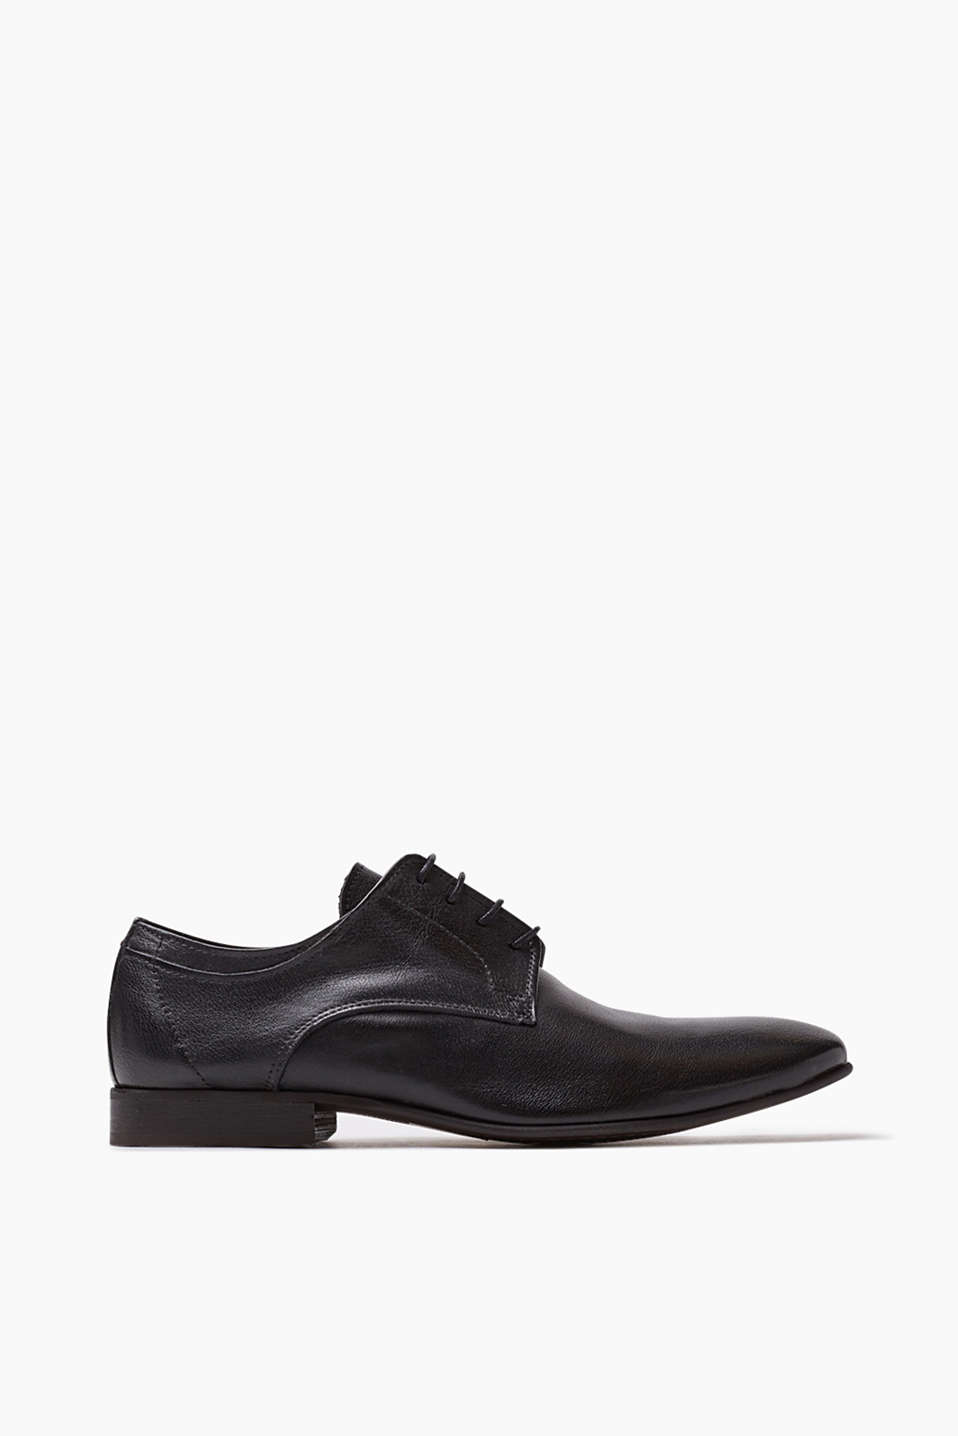 Modern business: Soft, smooth leather lace-ups